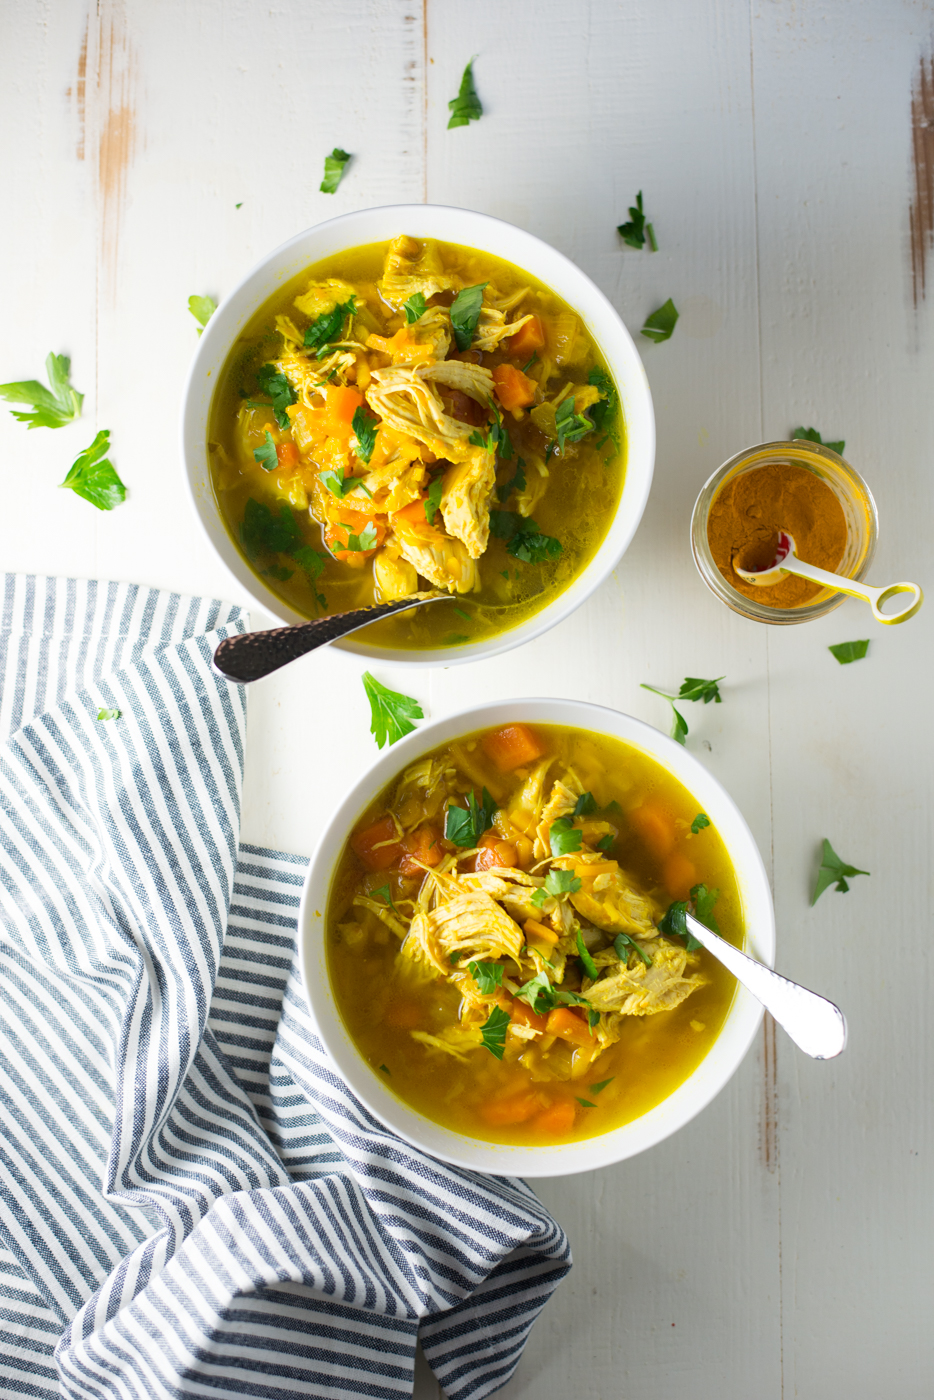 Packed with chicken, veggies, and good-for-you turmeric, Instant Pot + Slow Cooker Turmeric Chicken No-Noodle Soup is warming, nourishing, and so delicious!